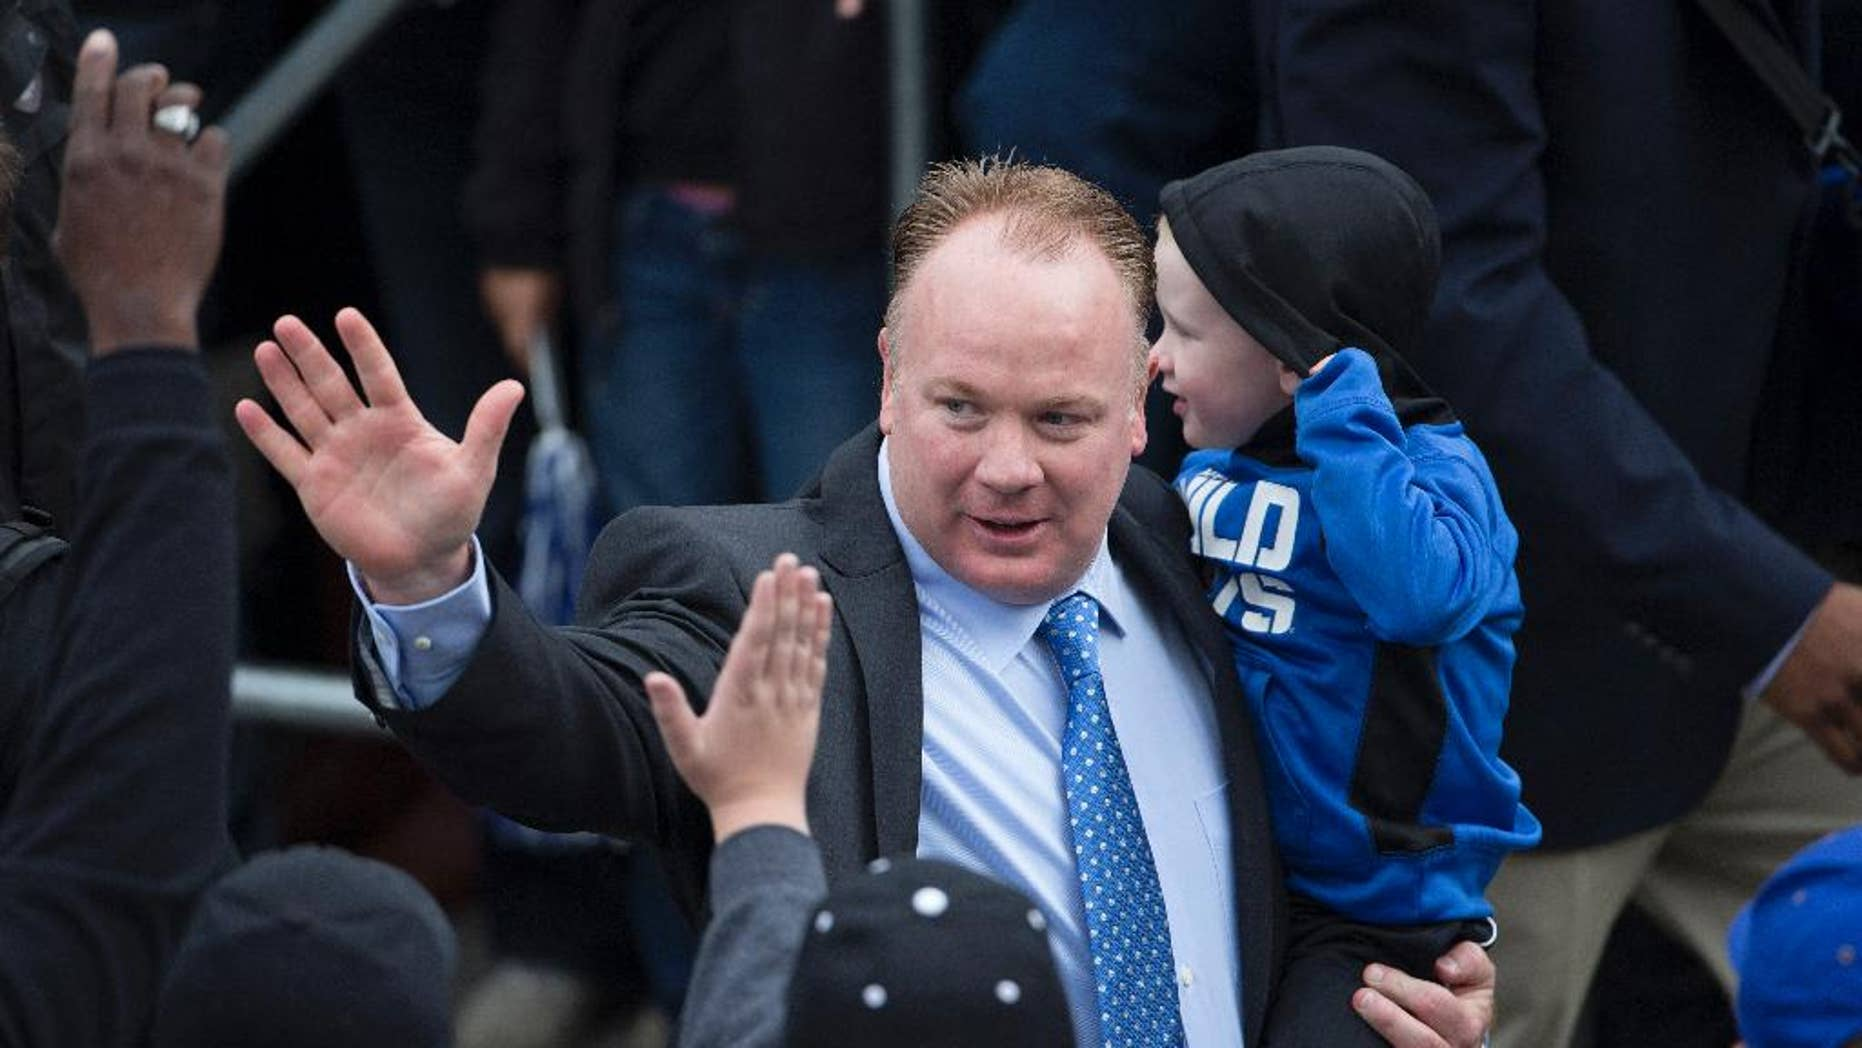 Kentucky head coach Mark Stoops, holding his son Zack, waves to fans as he walks into the stadium for an an NCAA college football game against South Carolina at Commonwealth Stadium in Lexington, Ky., Saturday, Oct. 4, 2014. (AP Photo/David Stephenson)